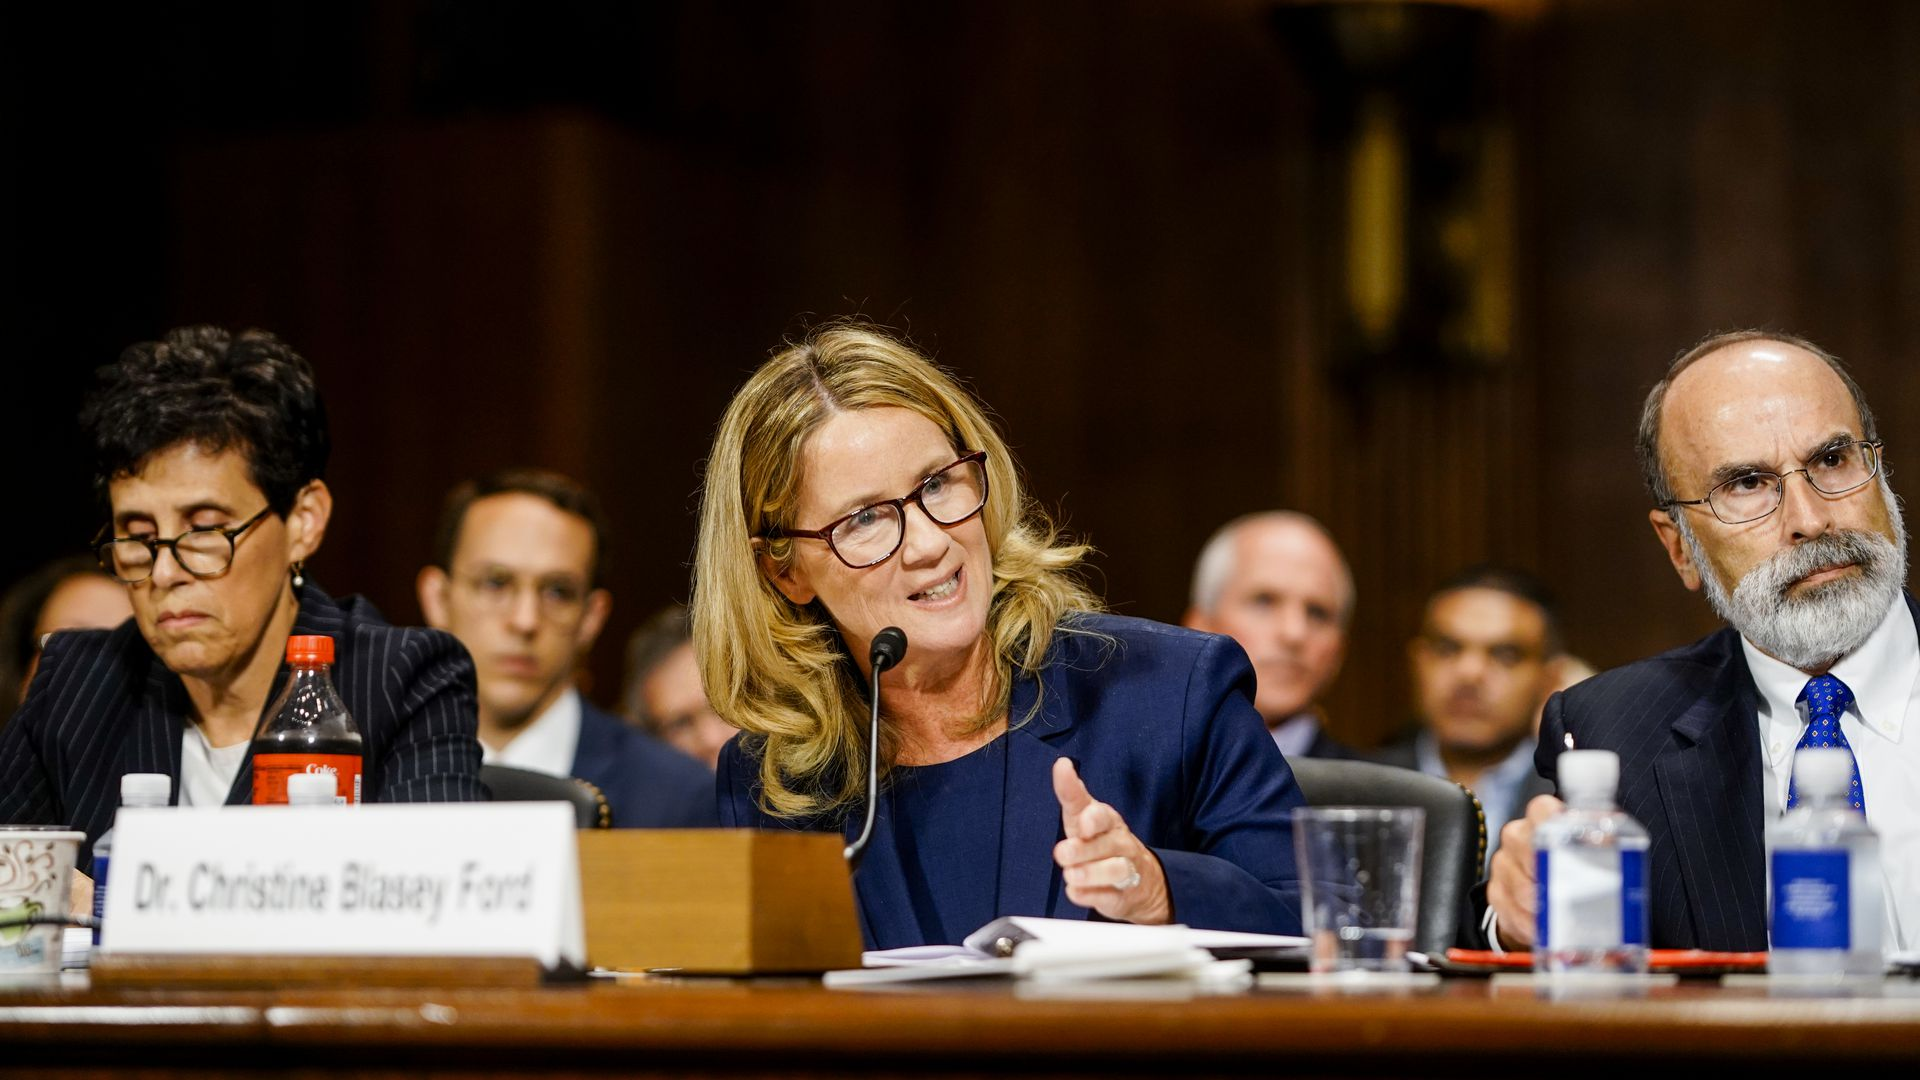 Christine Blasey Ford sitting at a table during the senate hearing.